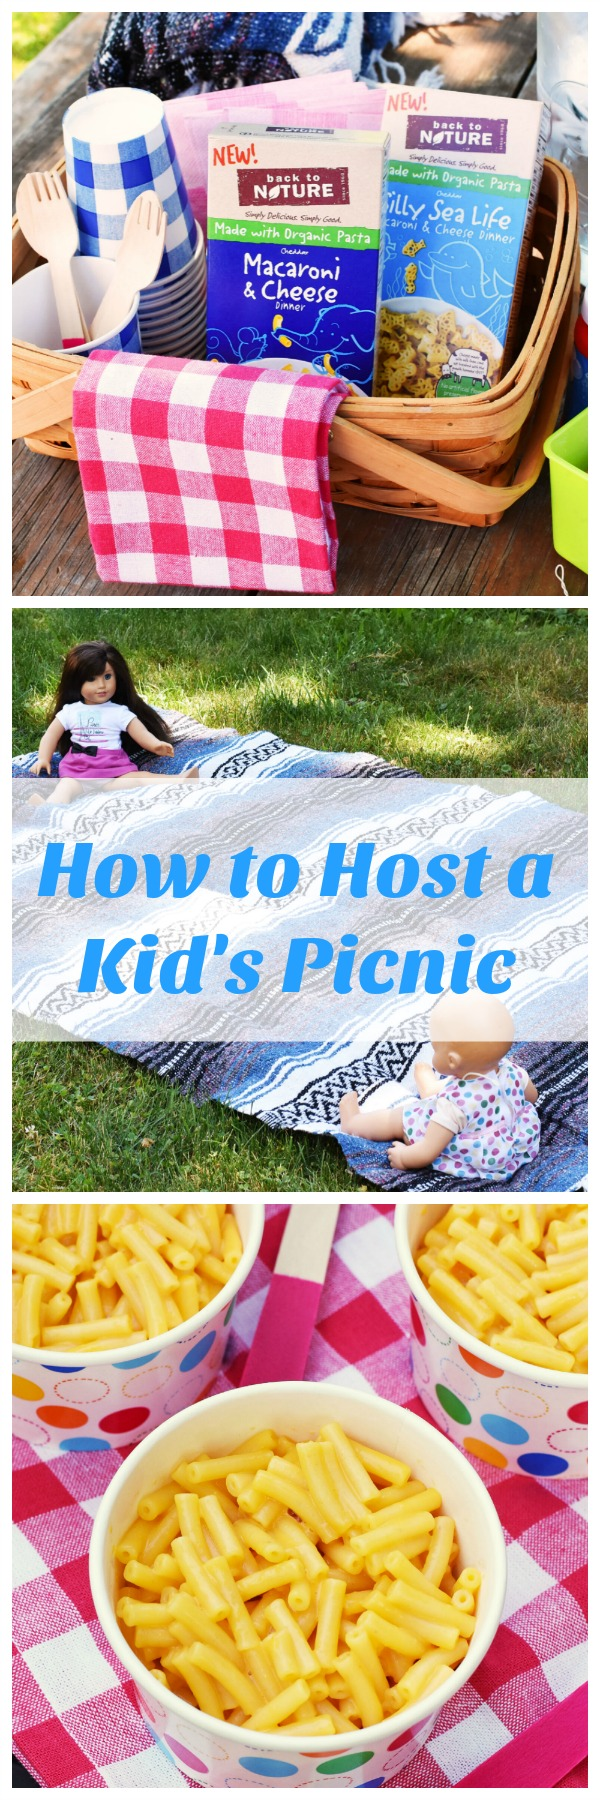 How-to-Host-a-Kids-Picnic